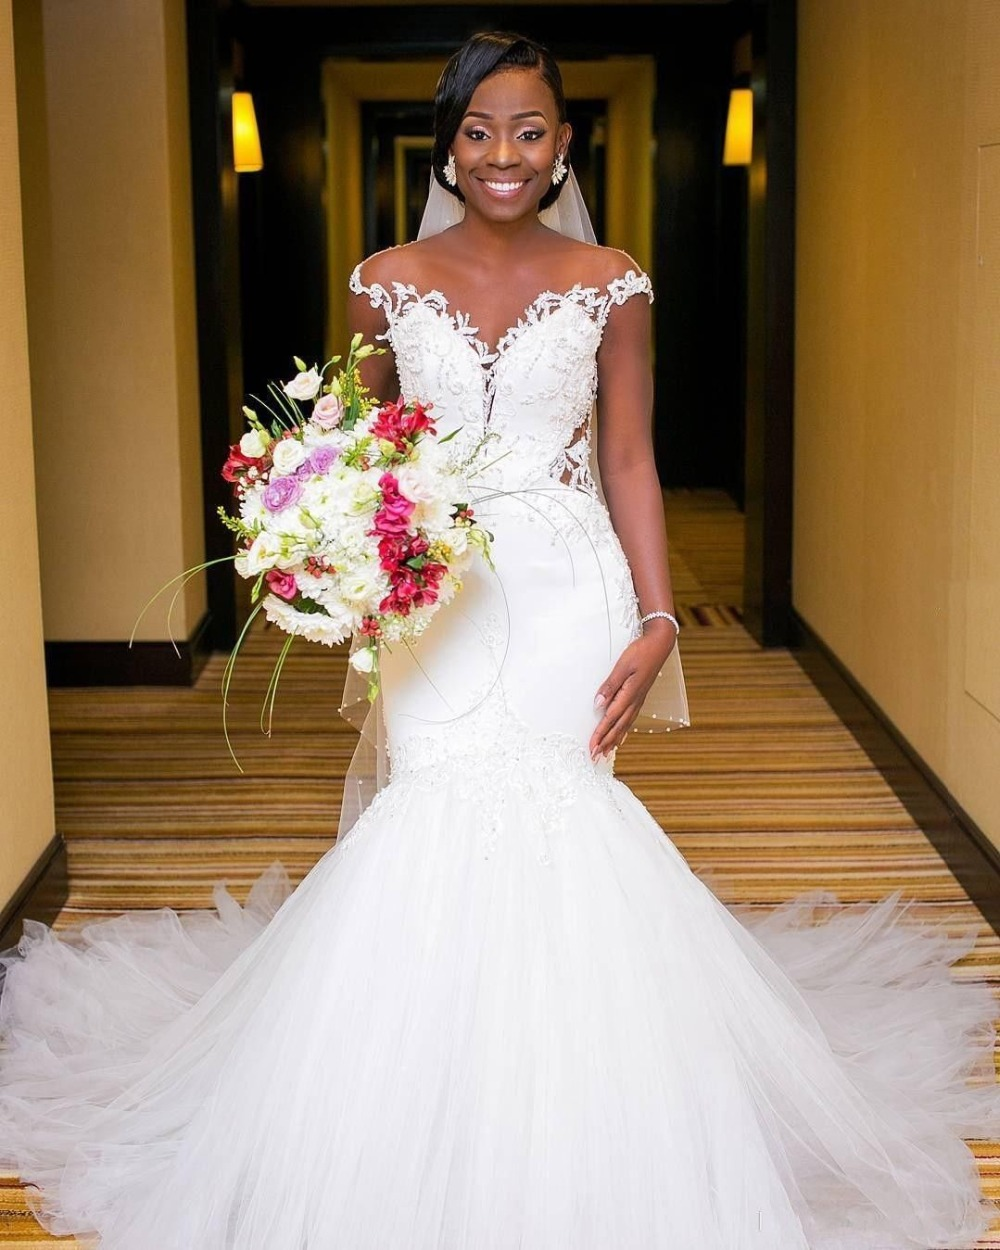 Lace Wedding Dresses With Cap Sleeves: African Cap Sleeve Wedding Dresses Lace Mermaid Bridal